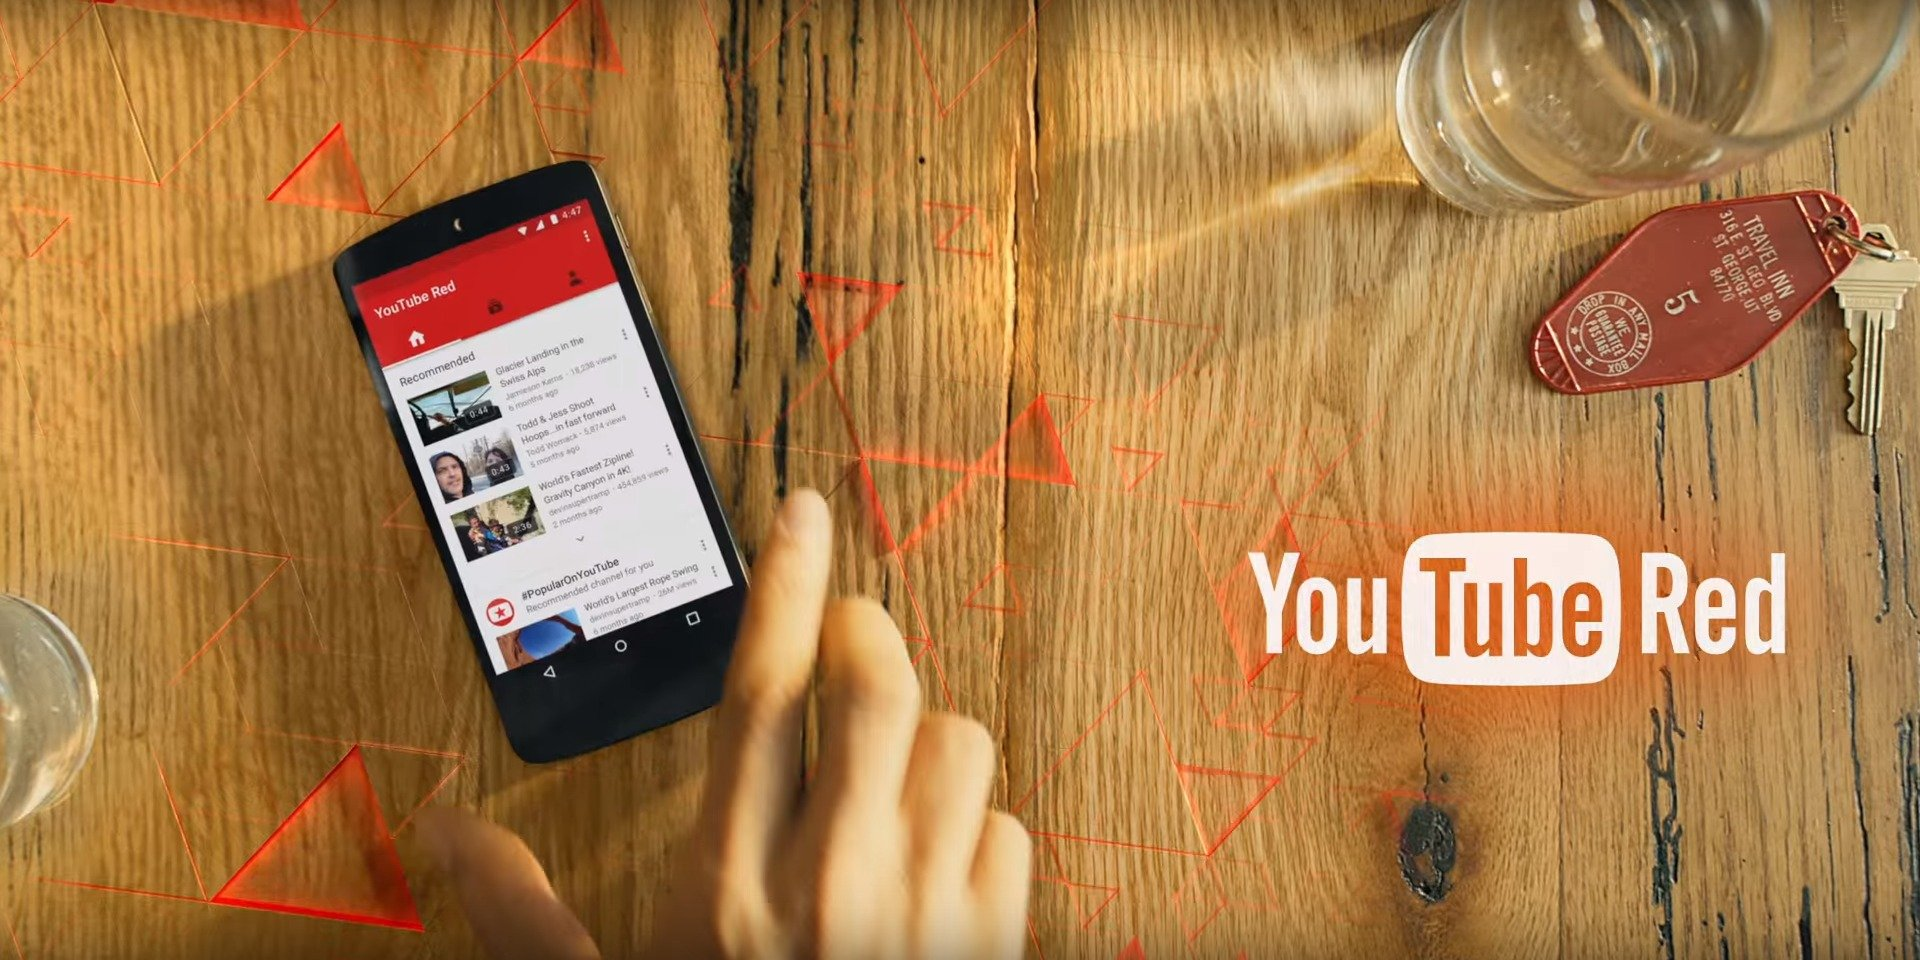 YouTube Announces Its Paid Services; YouTube Red And Music